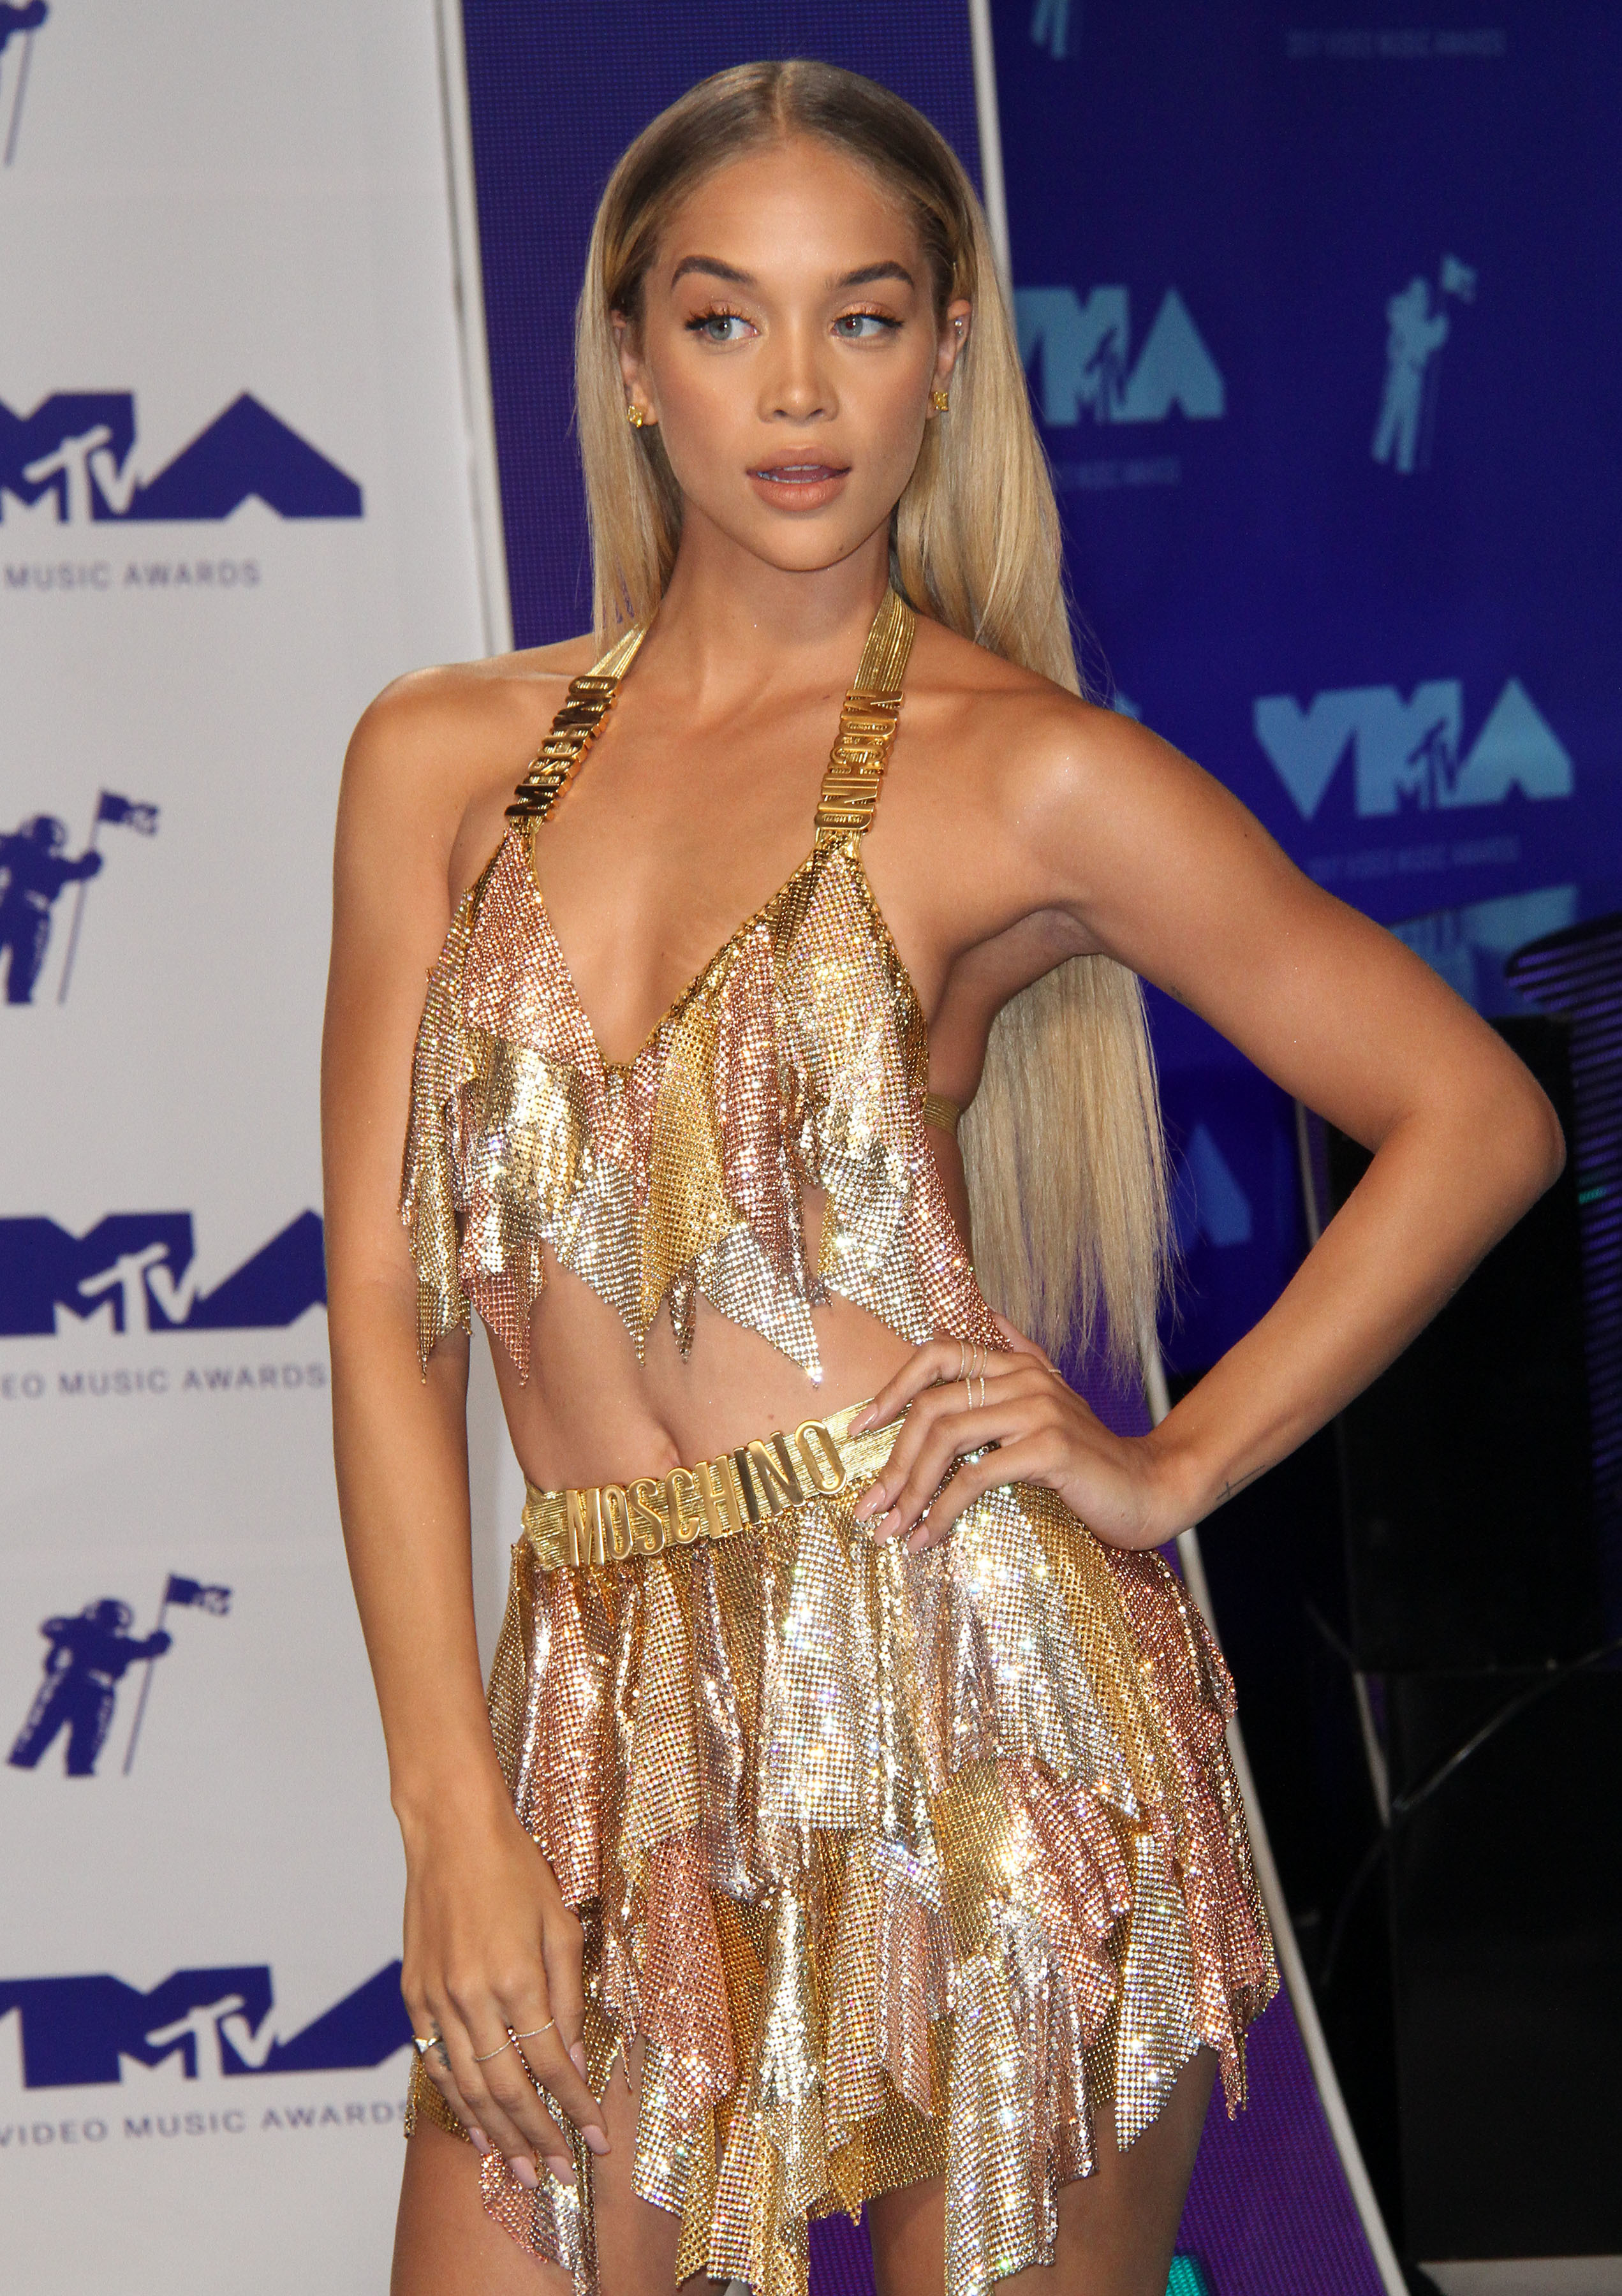 MTV Video Music Awards (VMA) 2017 Arrivals held at the Forum in Inglewood, California.                                                                      Featuring: Jasmine Sanders                                   Where: Los Angeles, California, United States                                   When: 26 Aug 2017                                   Credit: Adriana M. Barraza/WENN.com